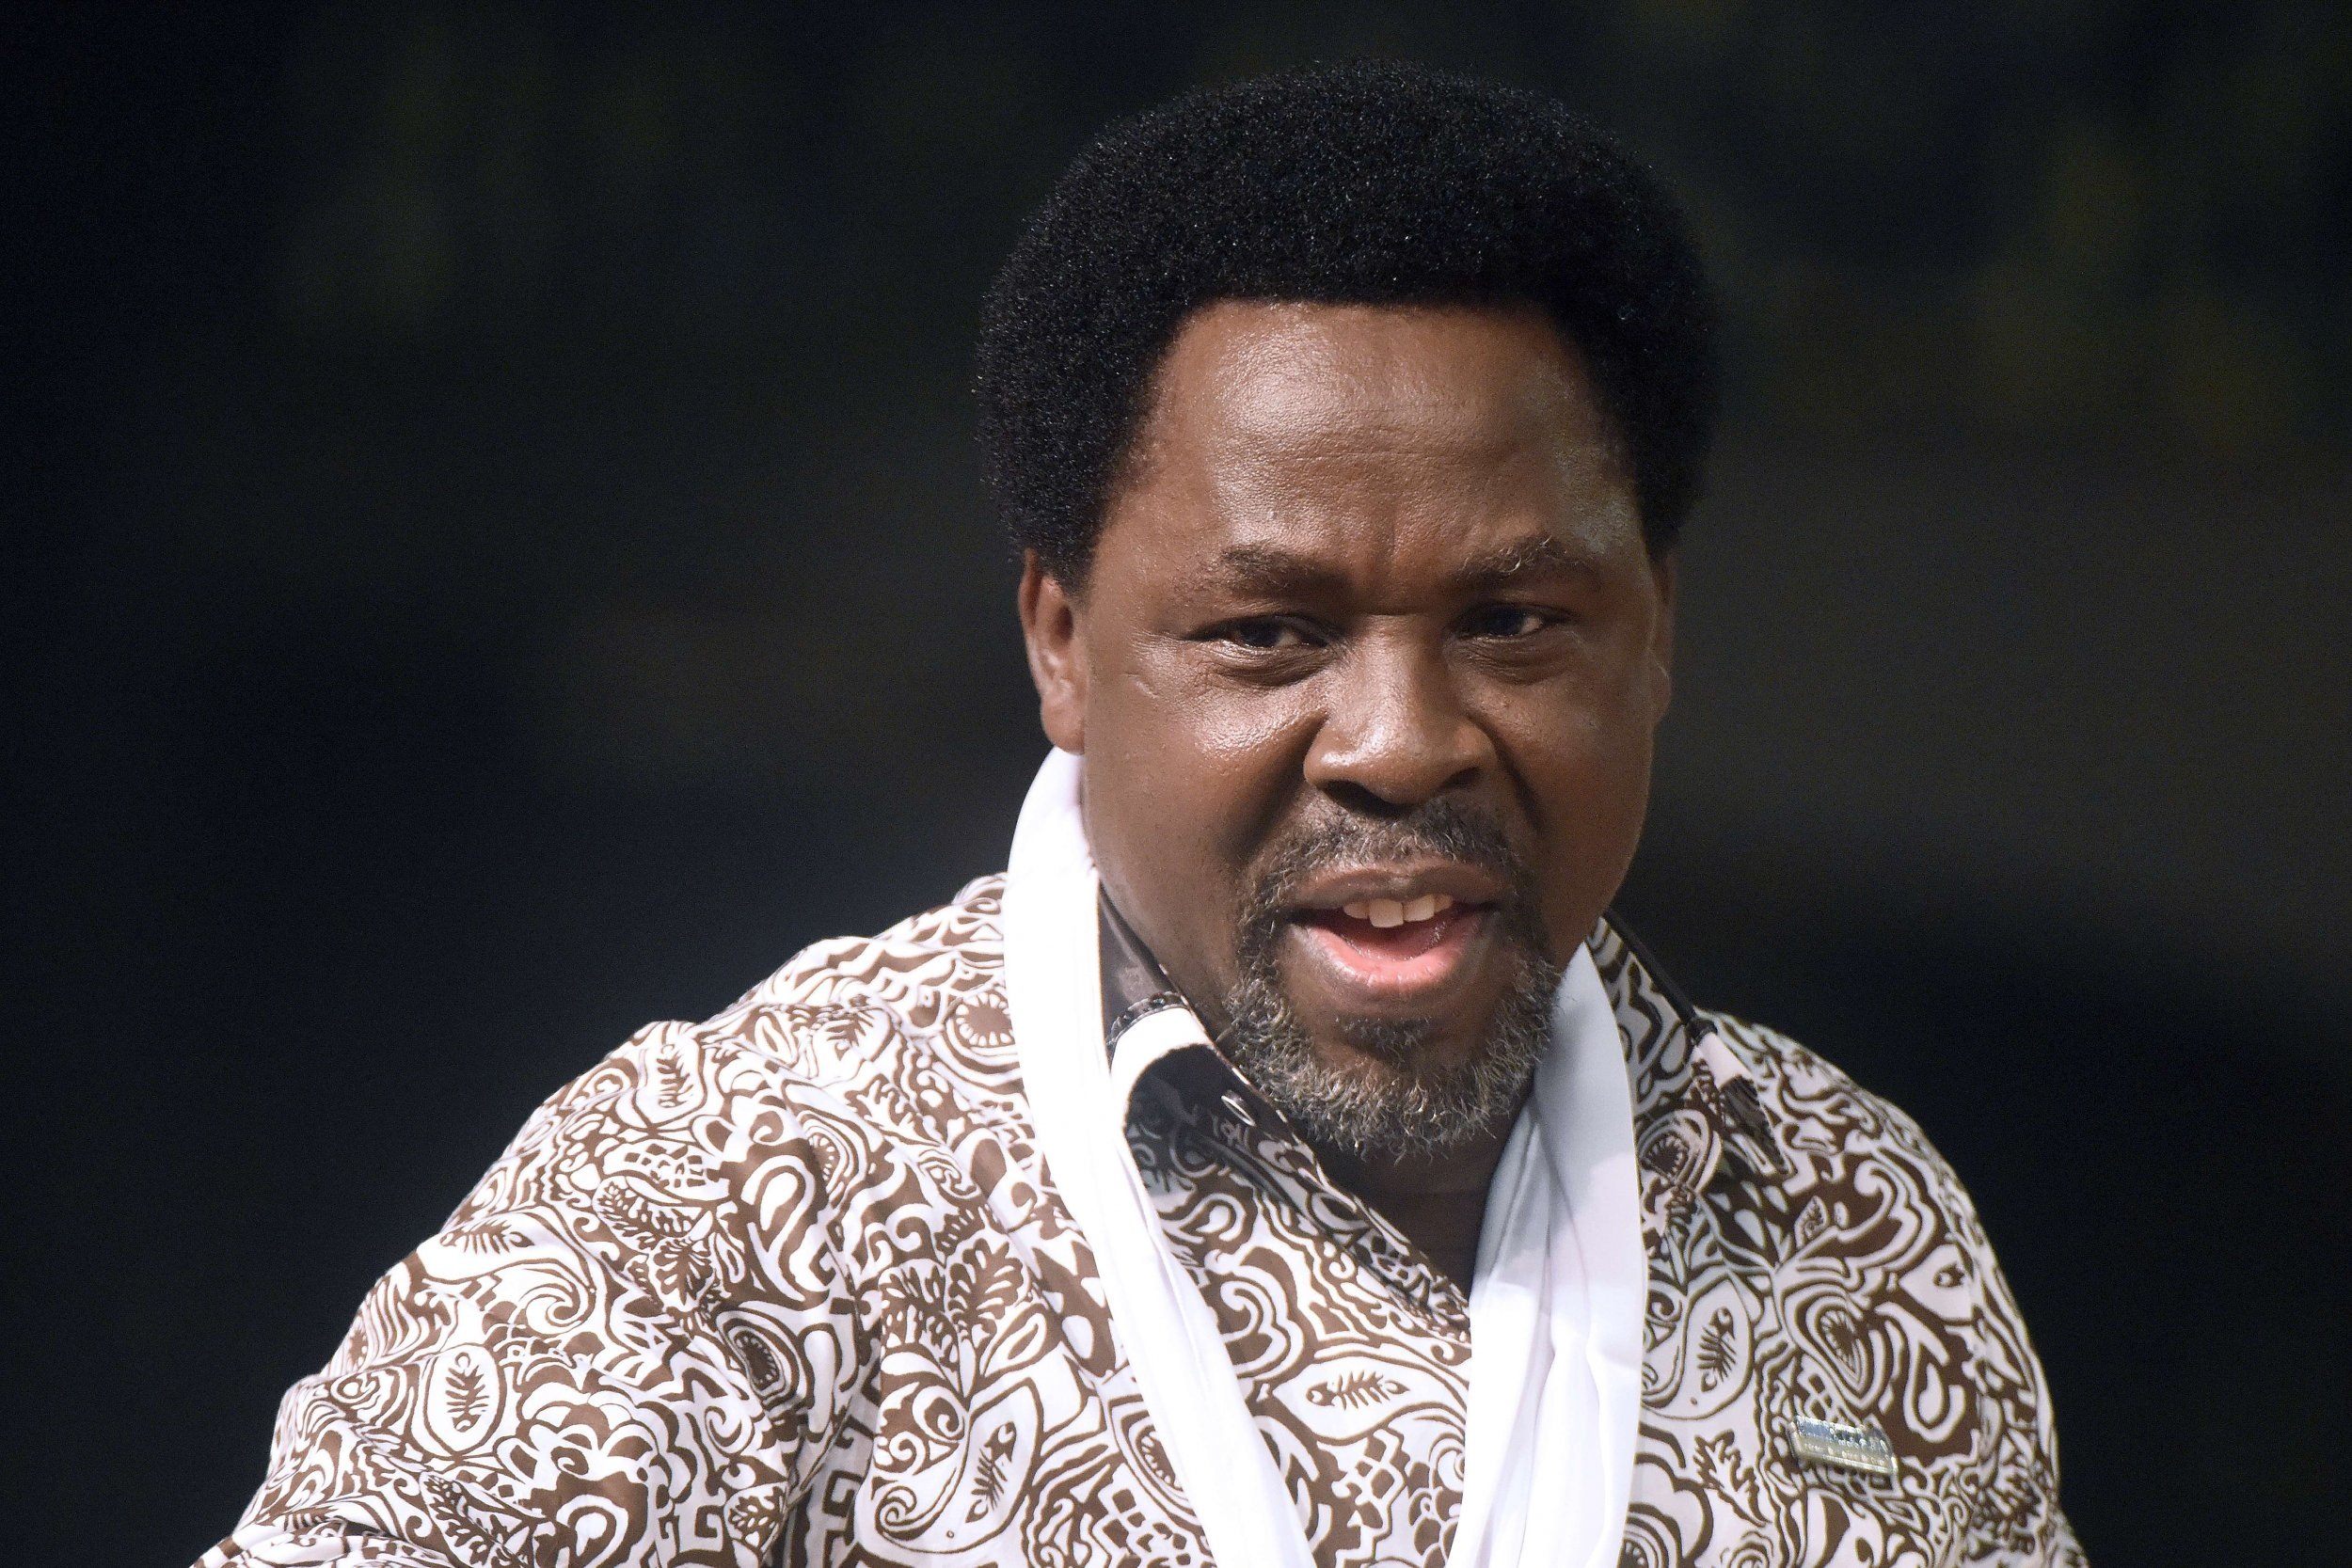 Nigerian preacher TB Joshua speaks at a service in Lagos.